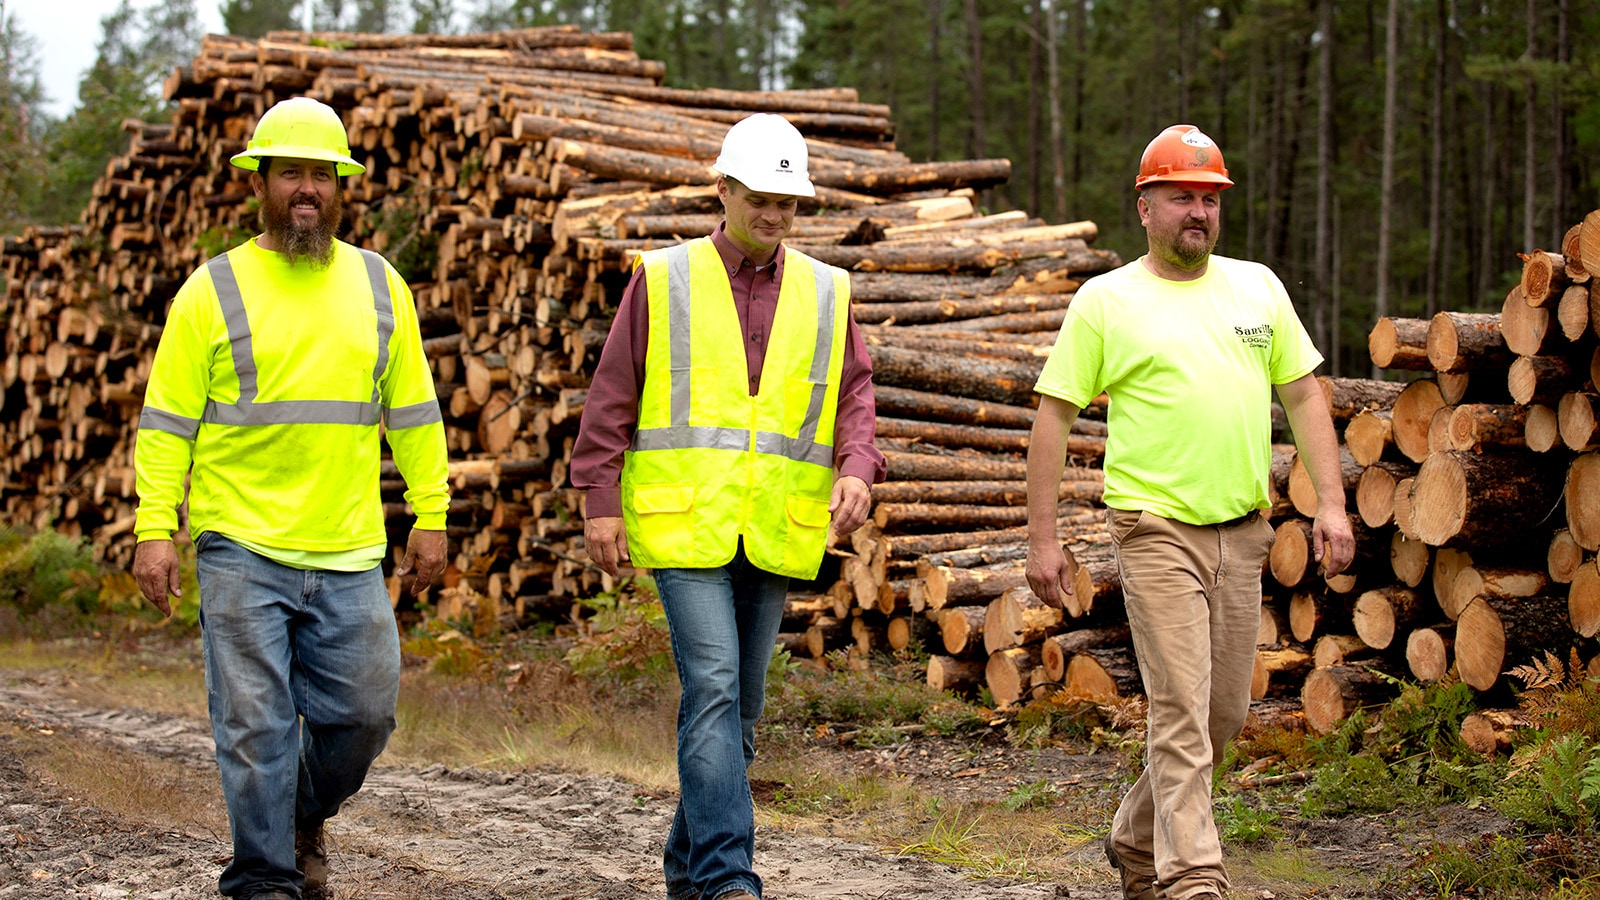 Three men walk in front of a large stack of cut logs.